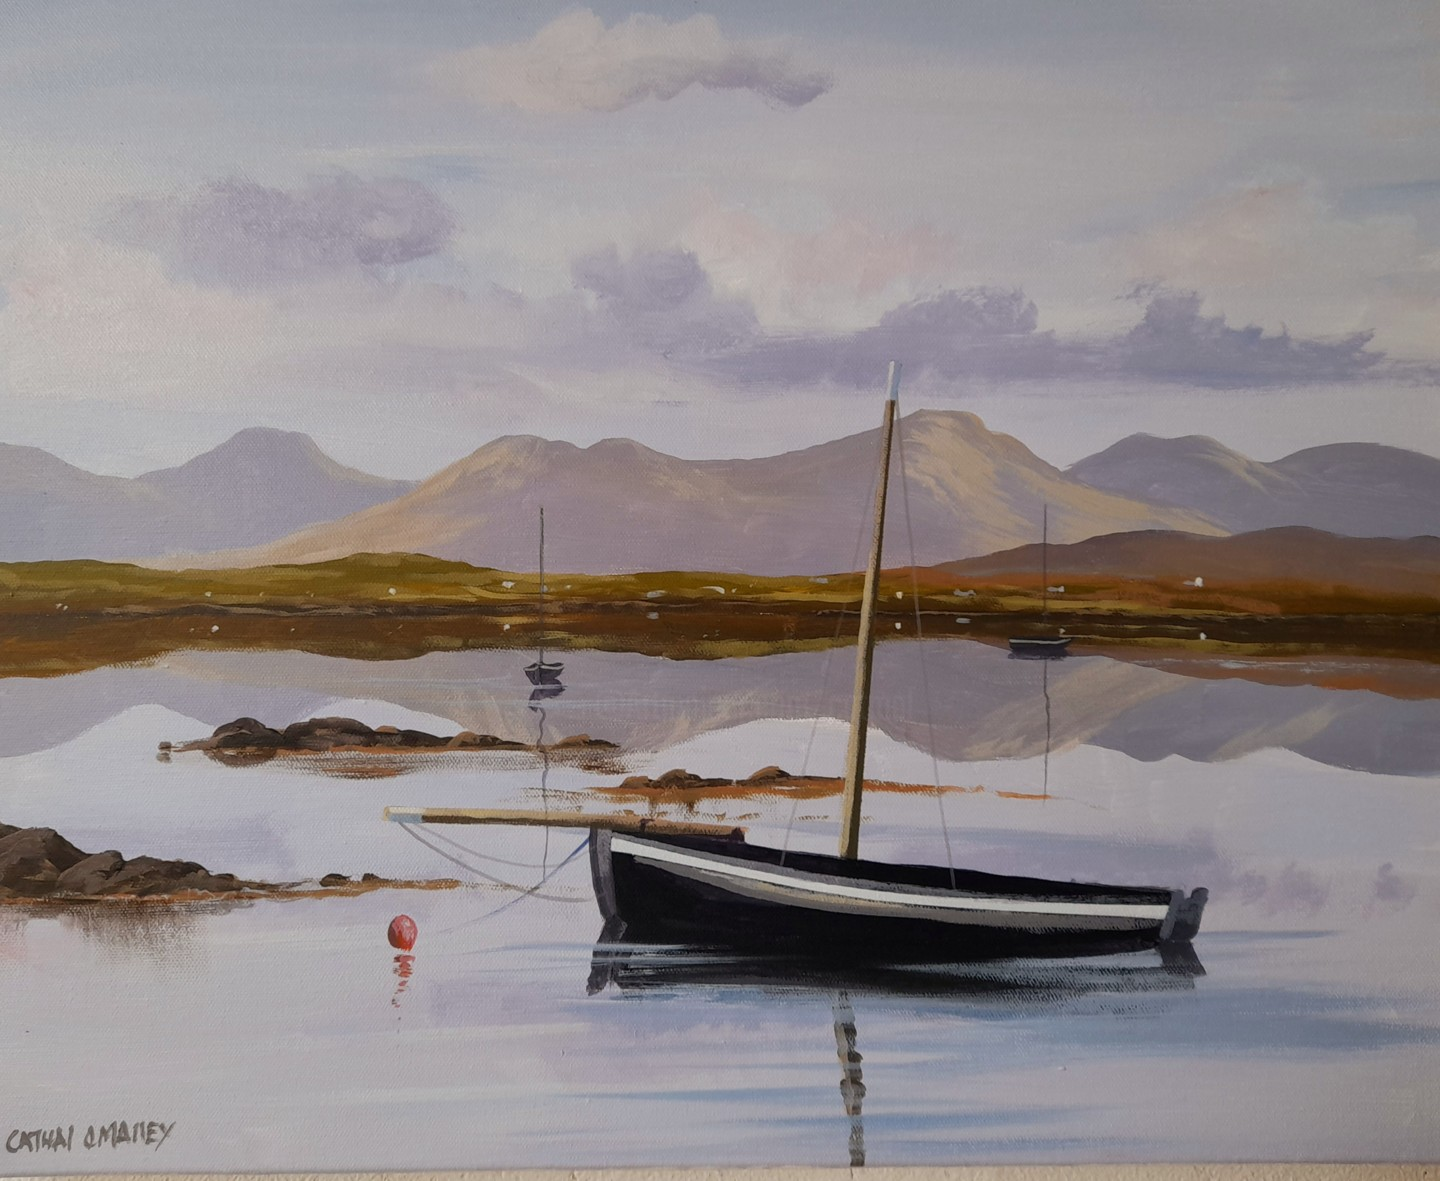 Cathal O Malley - Roundstone reflections of boats